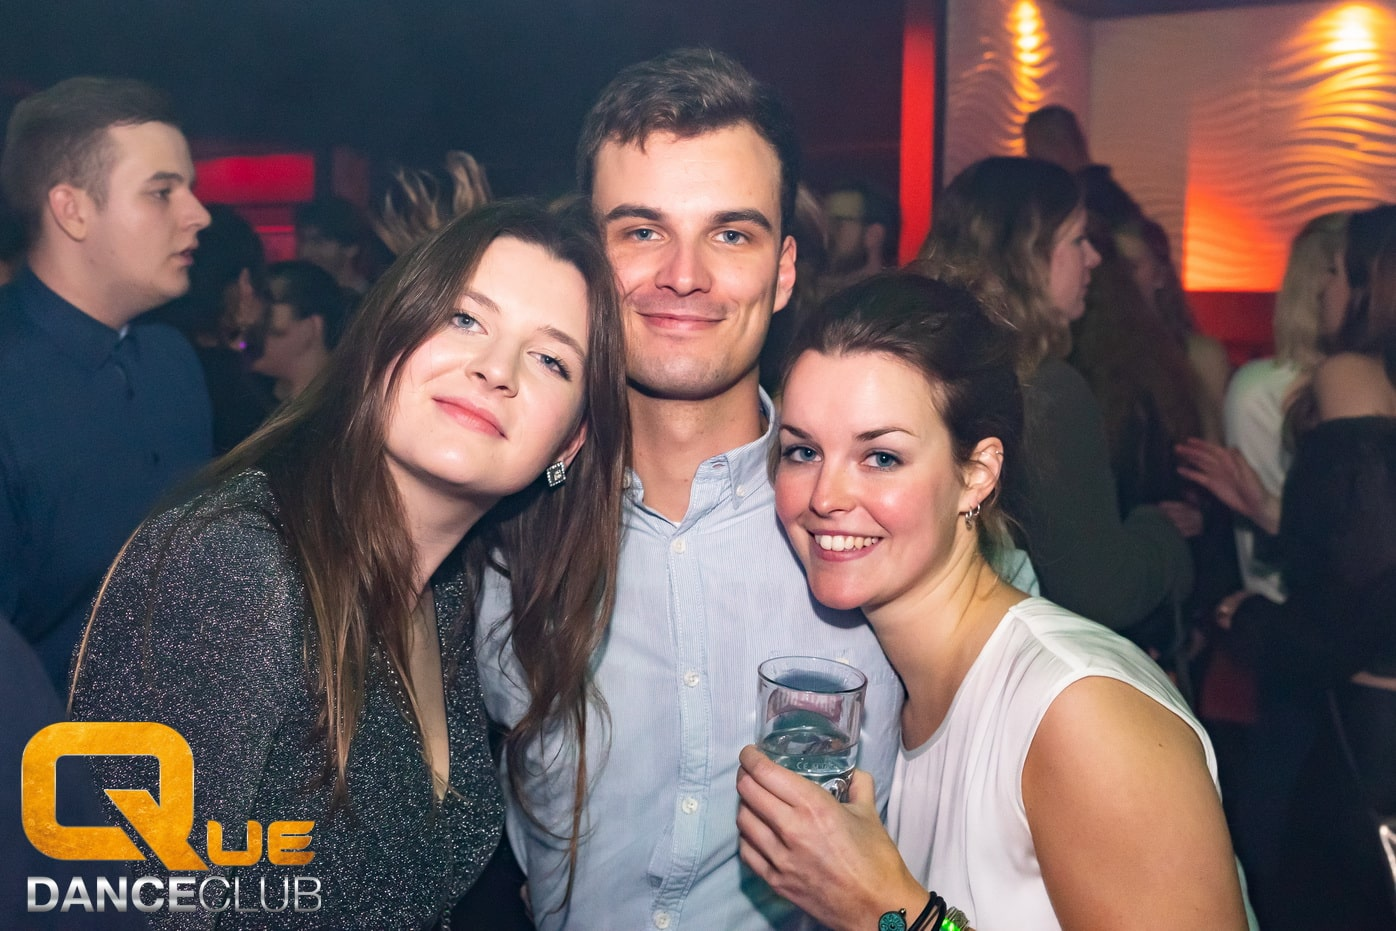 2018_12_25_Que_Danceclub_Engels_Nacht_2018_Nightlife_Scene_Timo_083